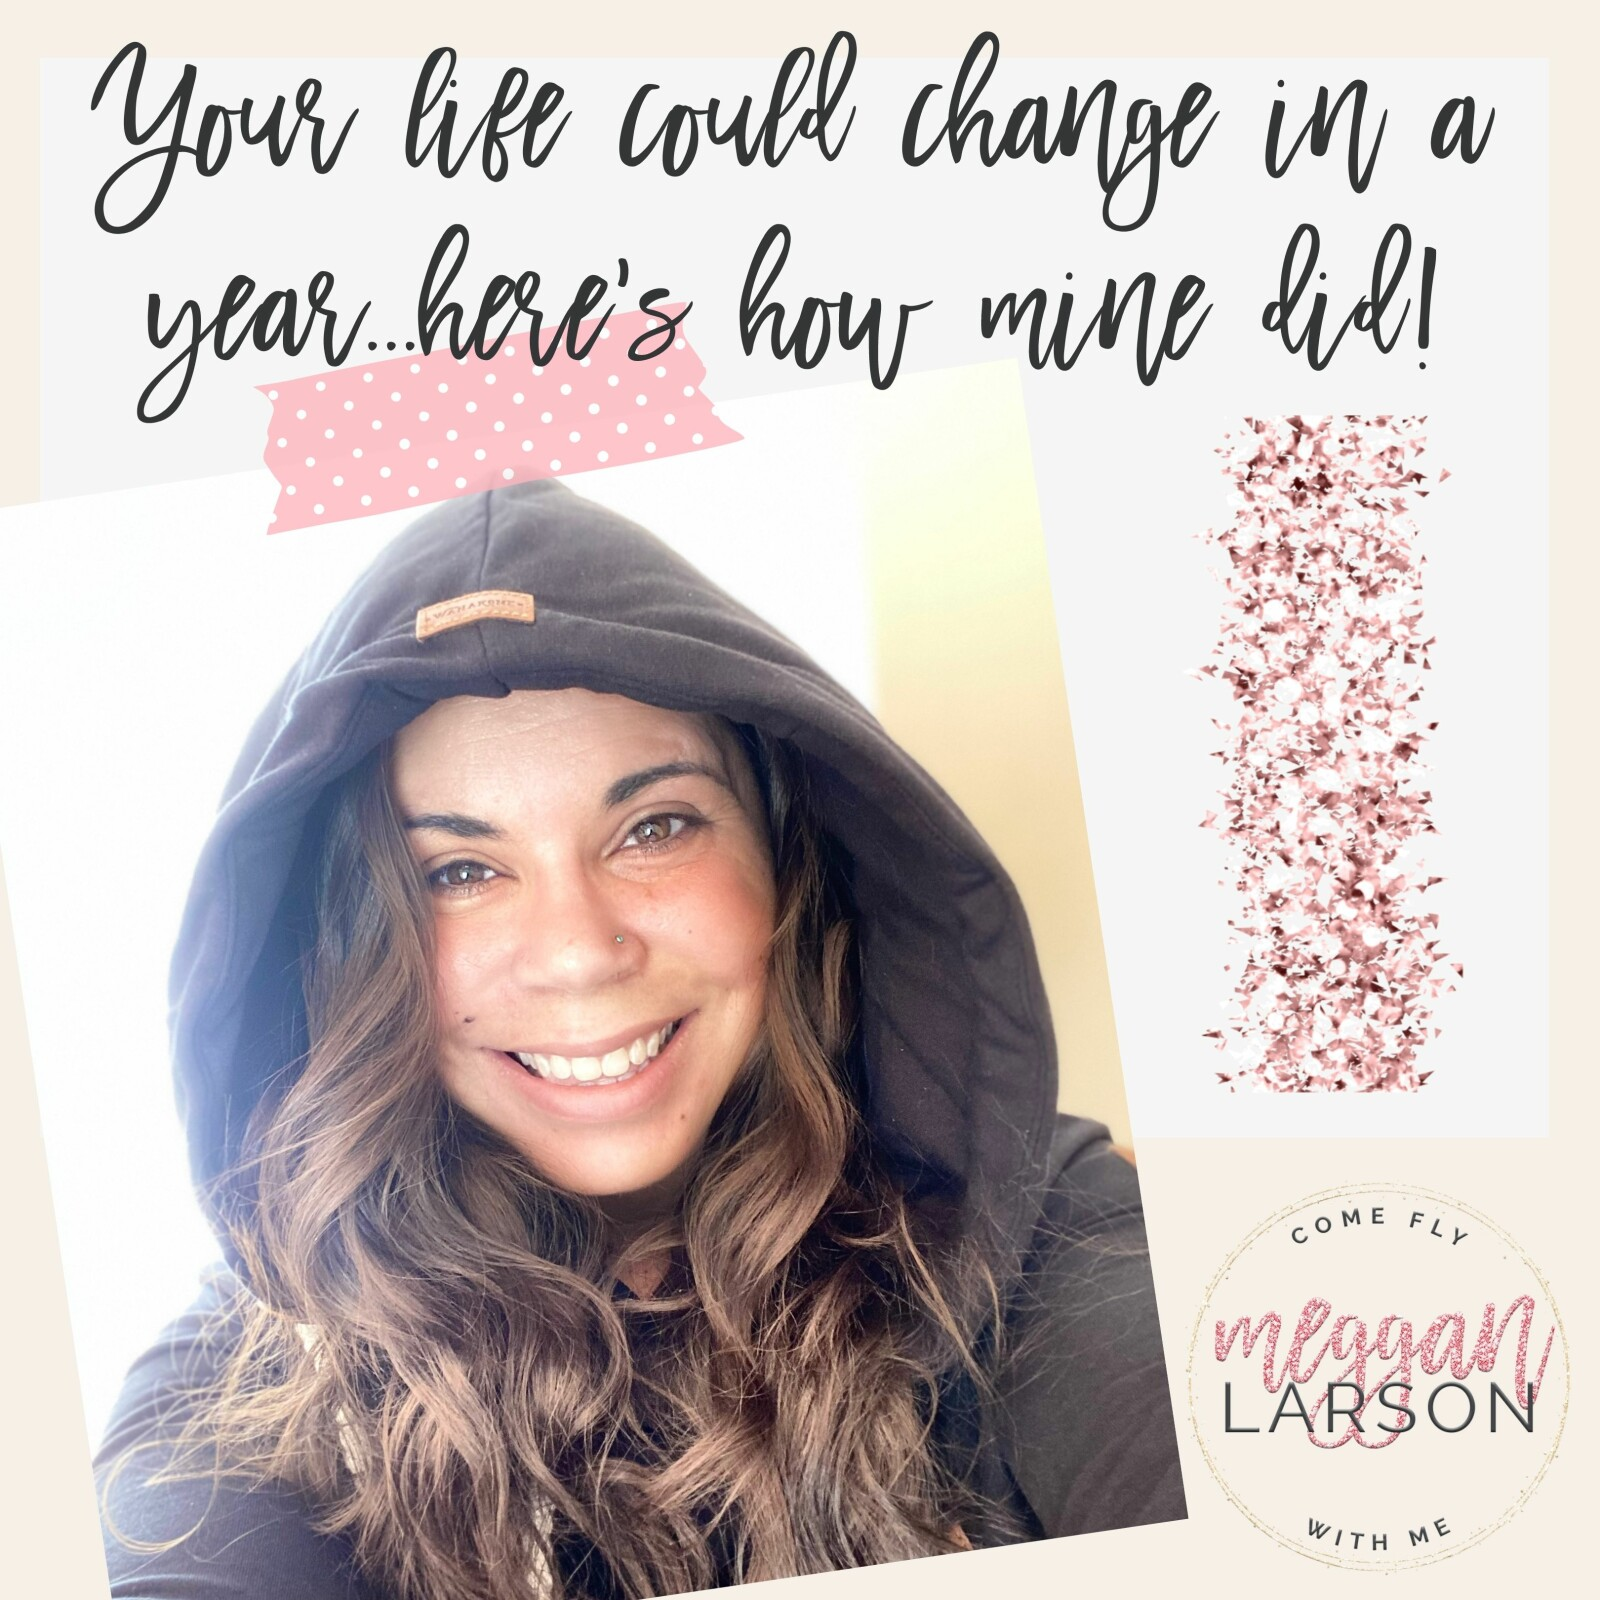 Your life could change in a year...here's how mine did!